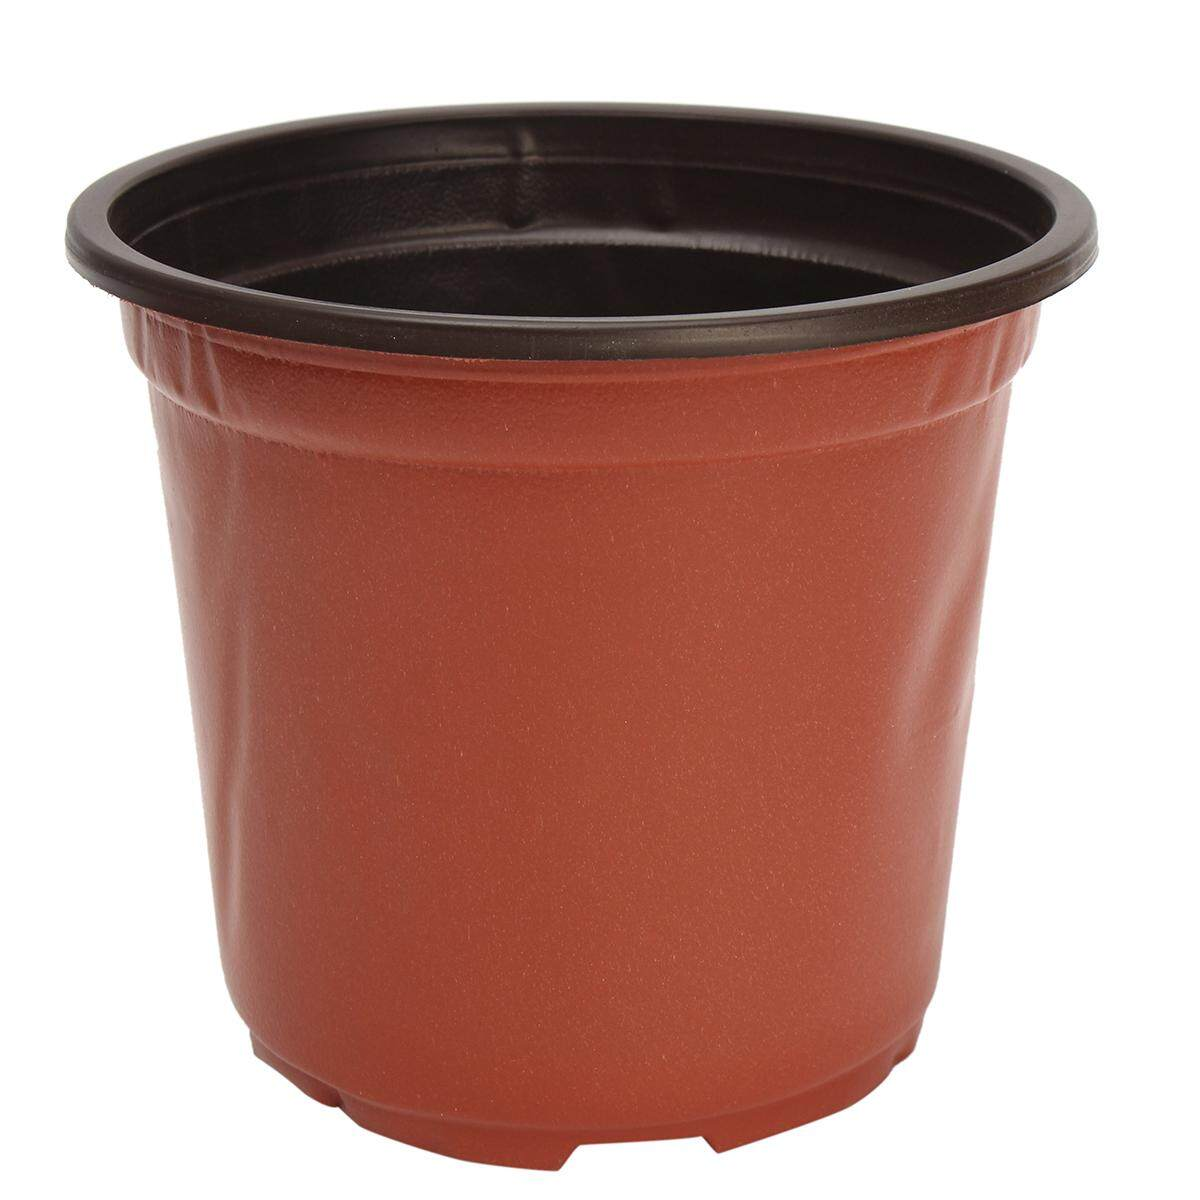 100Pcs Plastic Garden Nursery Pots Flowerpot Seedlings Planter Containers Set#9*6*8cm